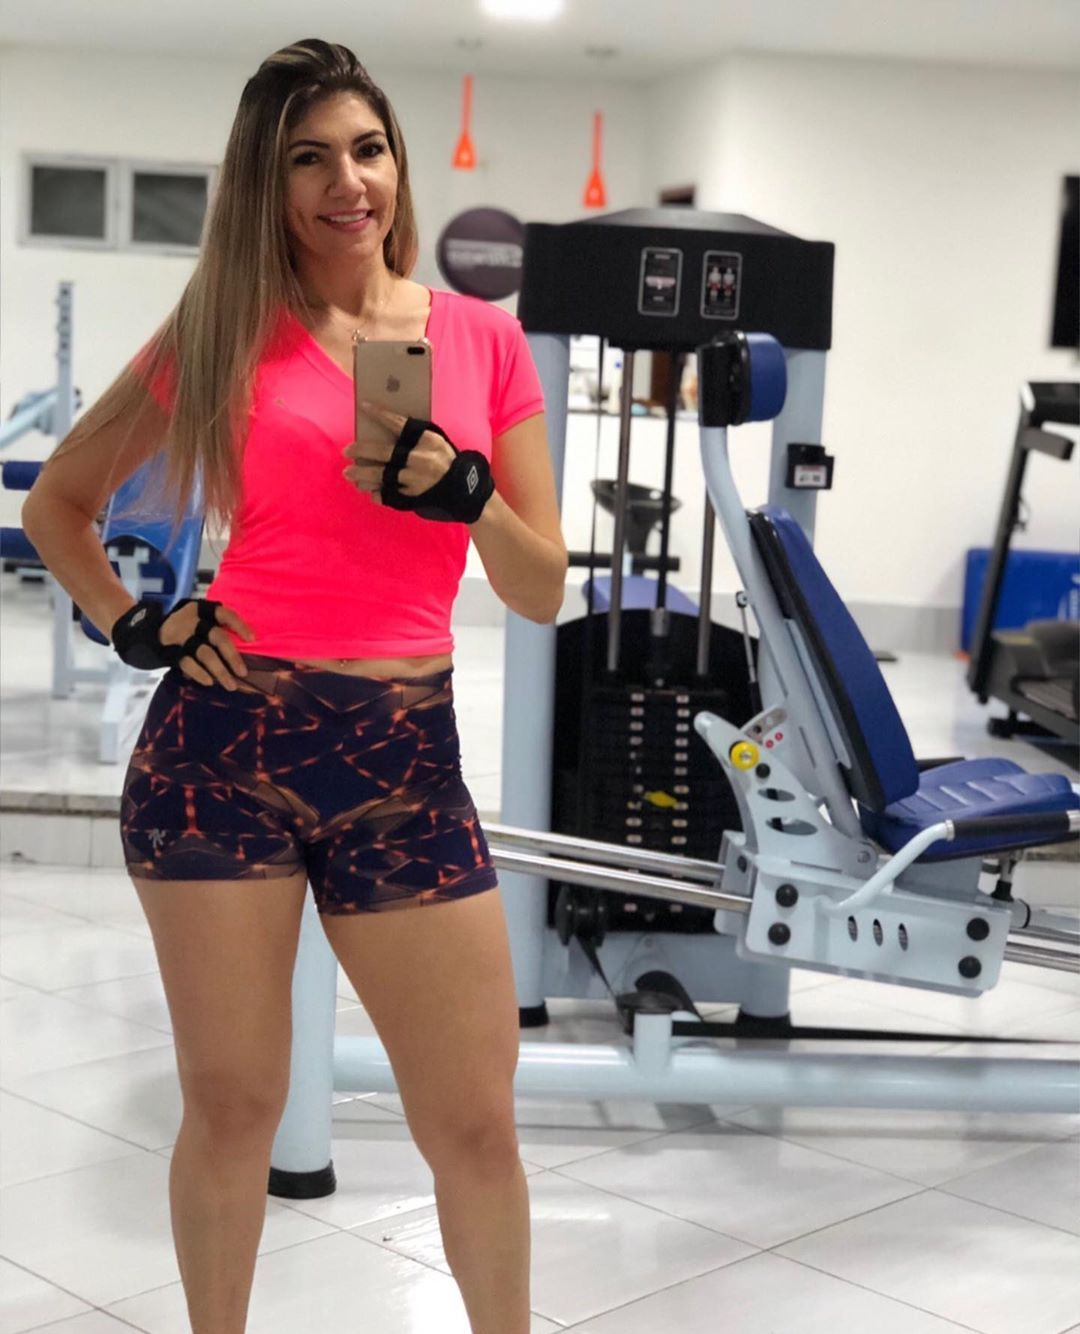 Week finished academy  Week finished   View this post on Instagram Semana finalizada A post shared by Gigliana Dantas giglianadantas on Oct 4 2019 at 440pm PDT The post W...